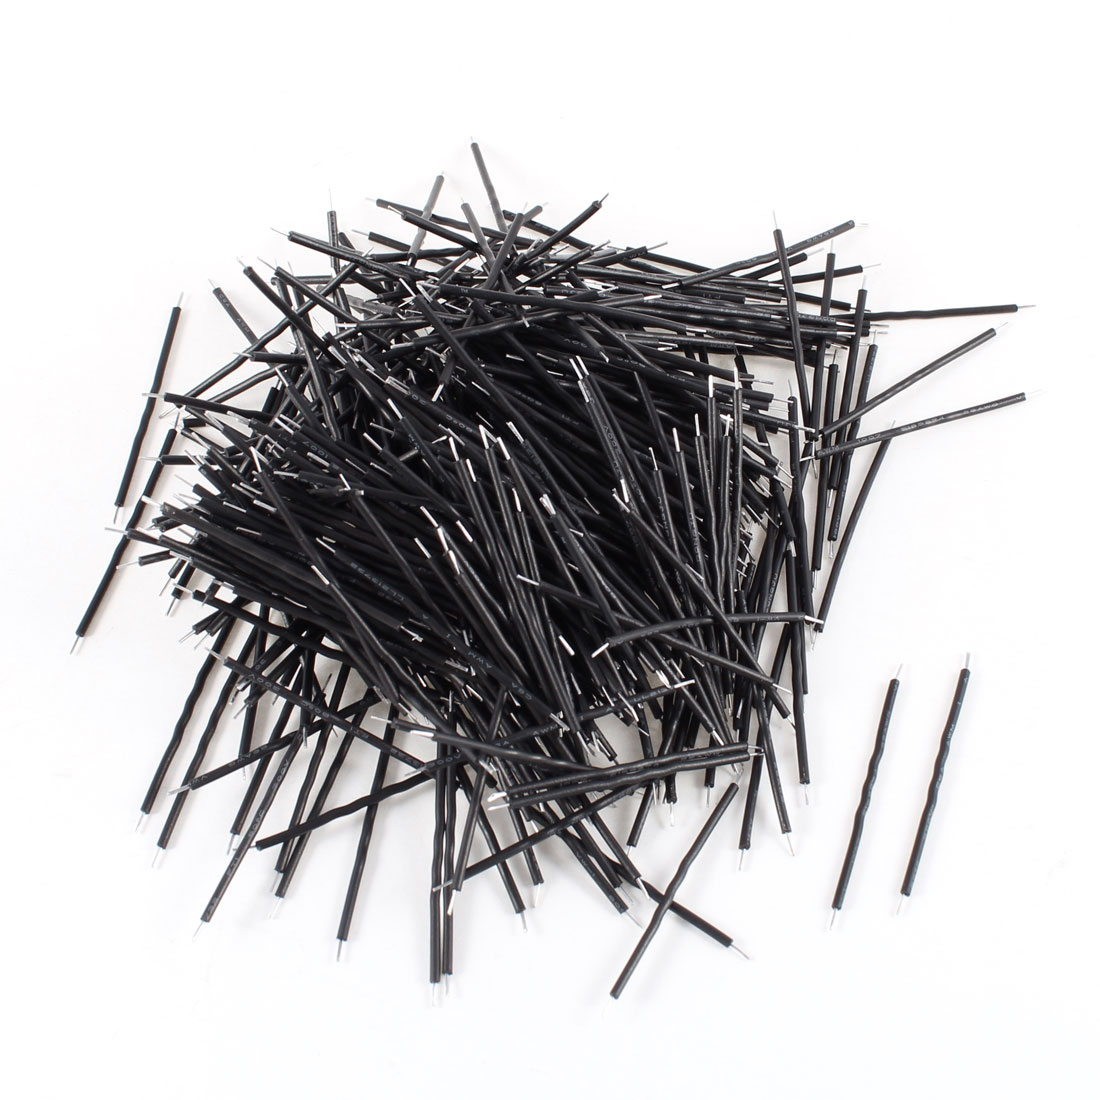 500pcs-Black-PVC-Coated-0-4x40mm-Tin-Plated-Brushless-Motor-Wire-Cable-26AWG